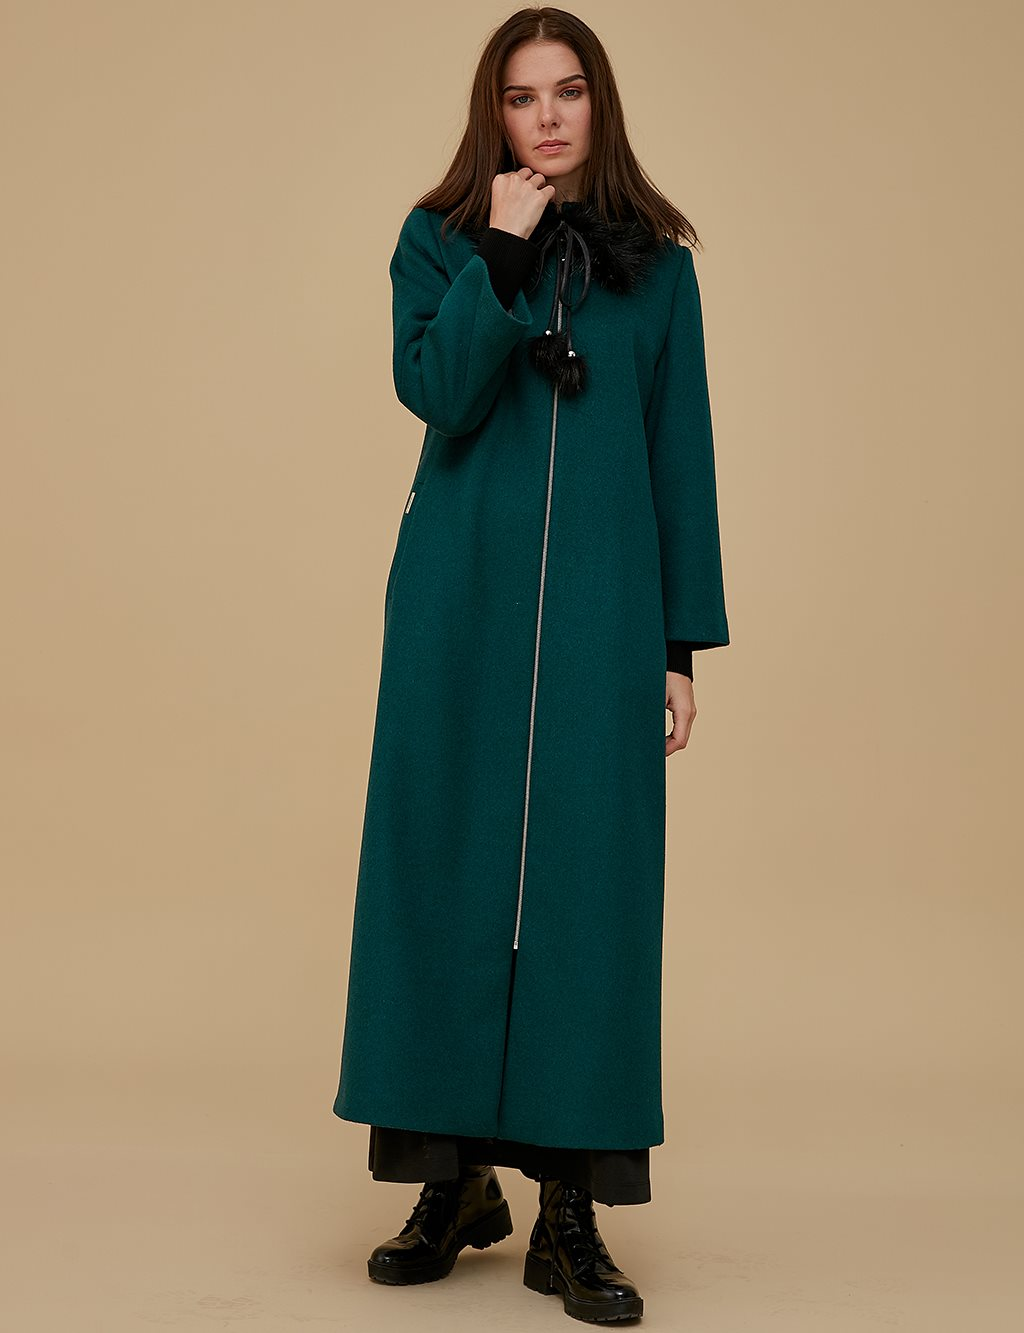 Furry Collar Coat A9 18012 Green